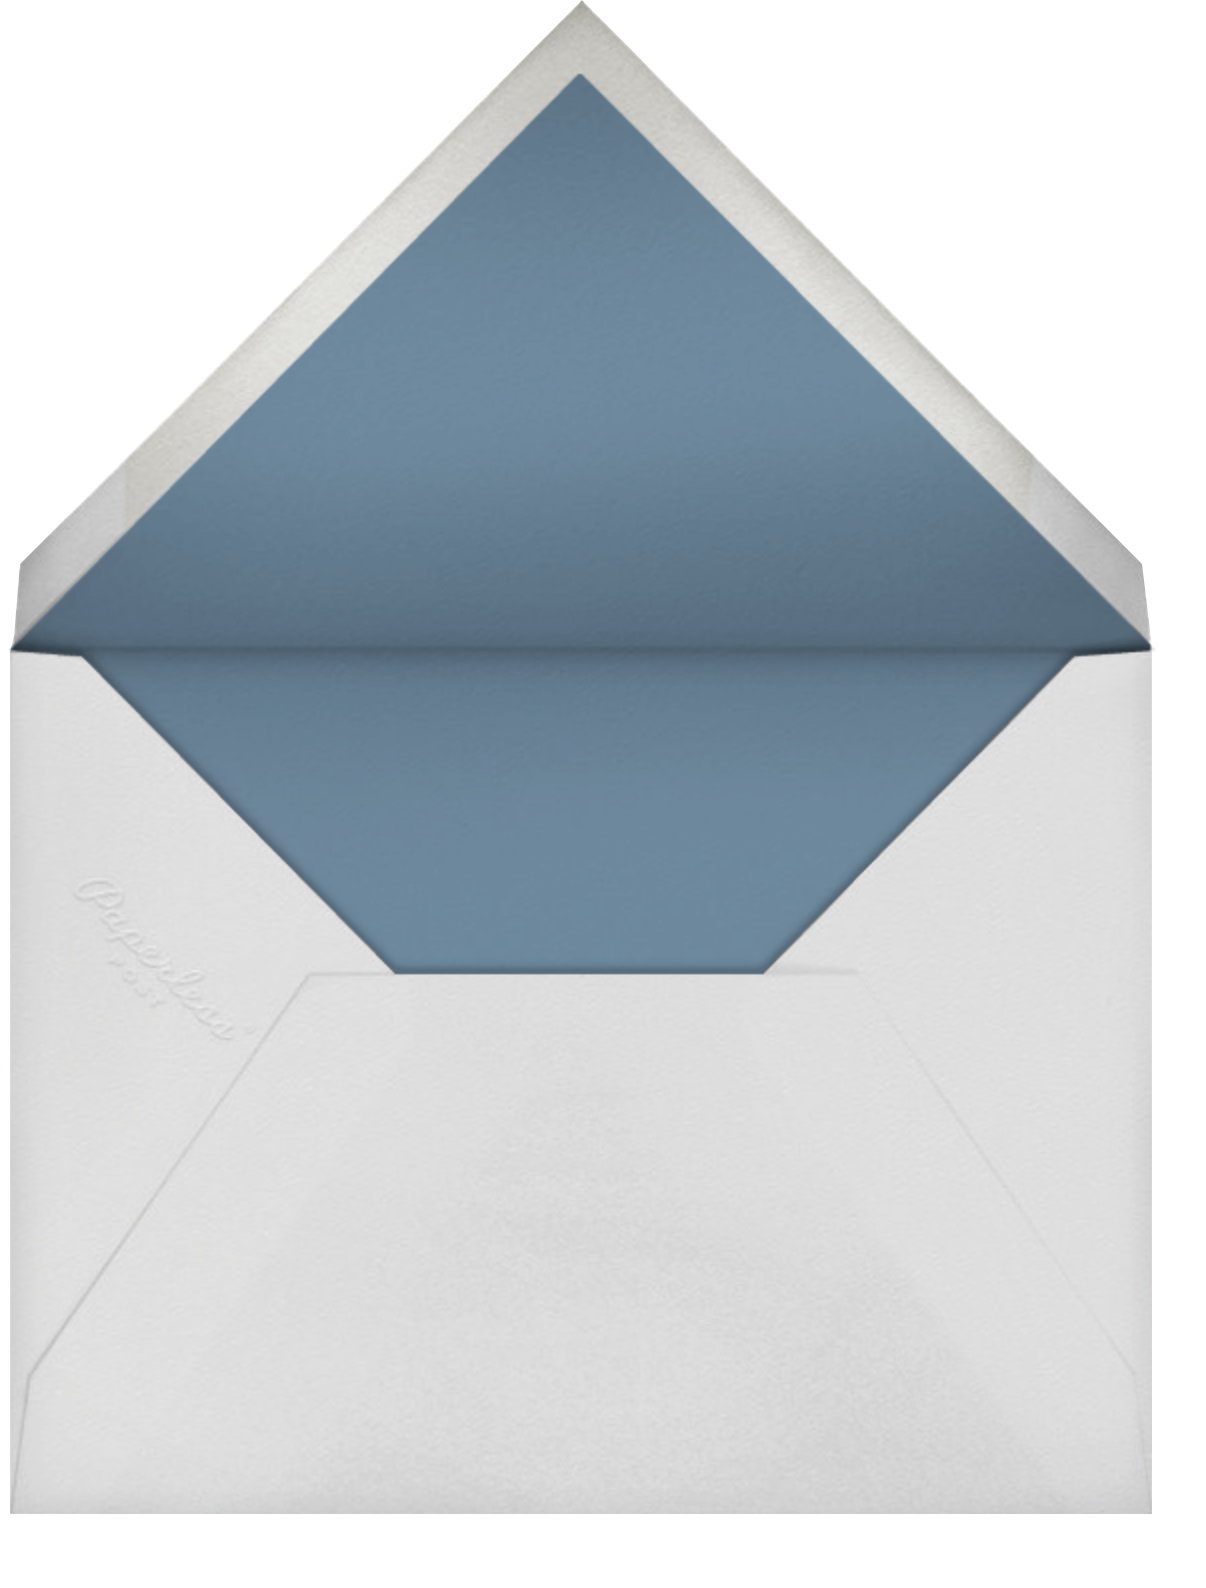 Andros (Thank You) - French Blue - Crane & Co. - null - envelope back